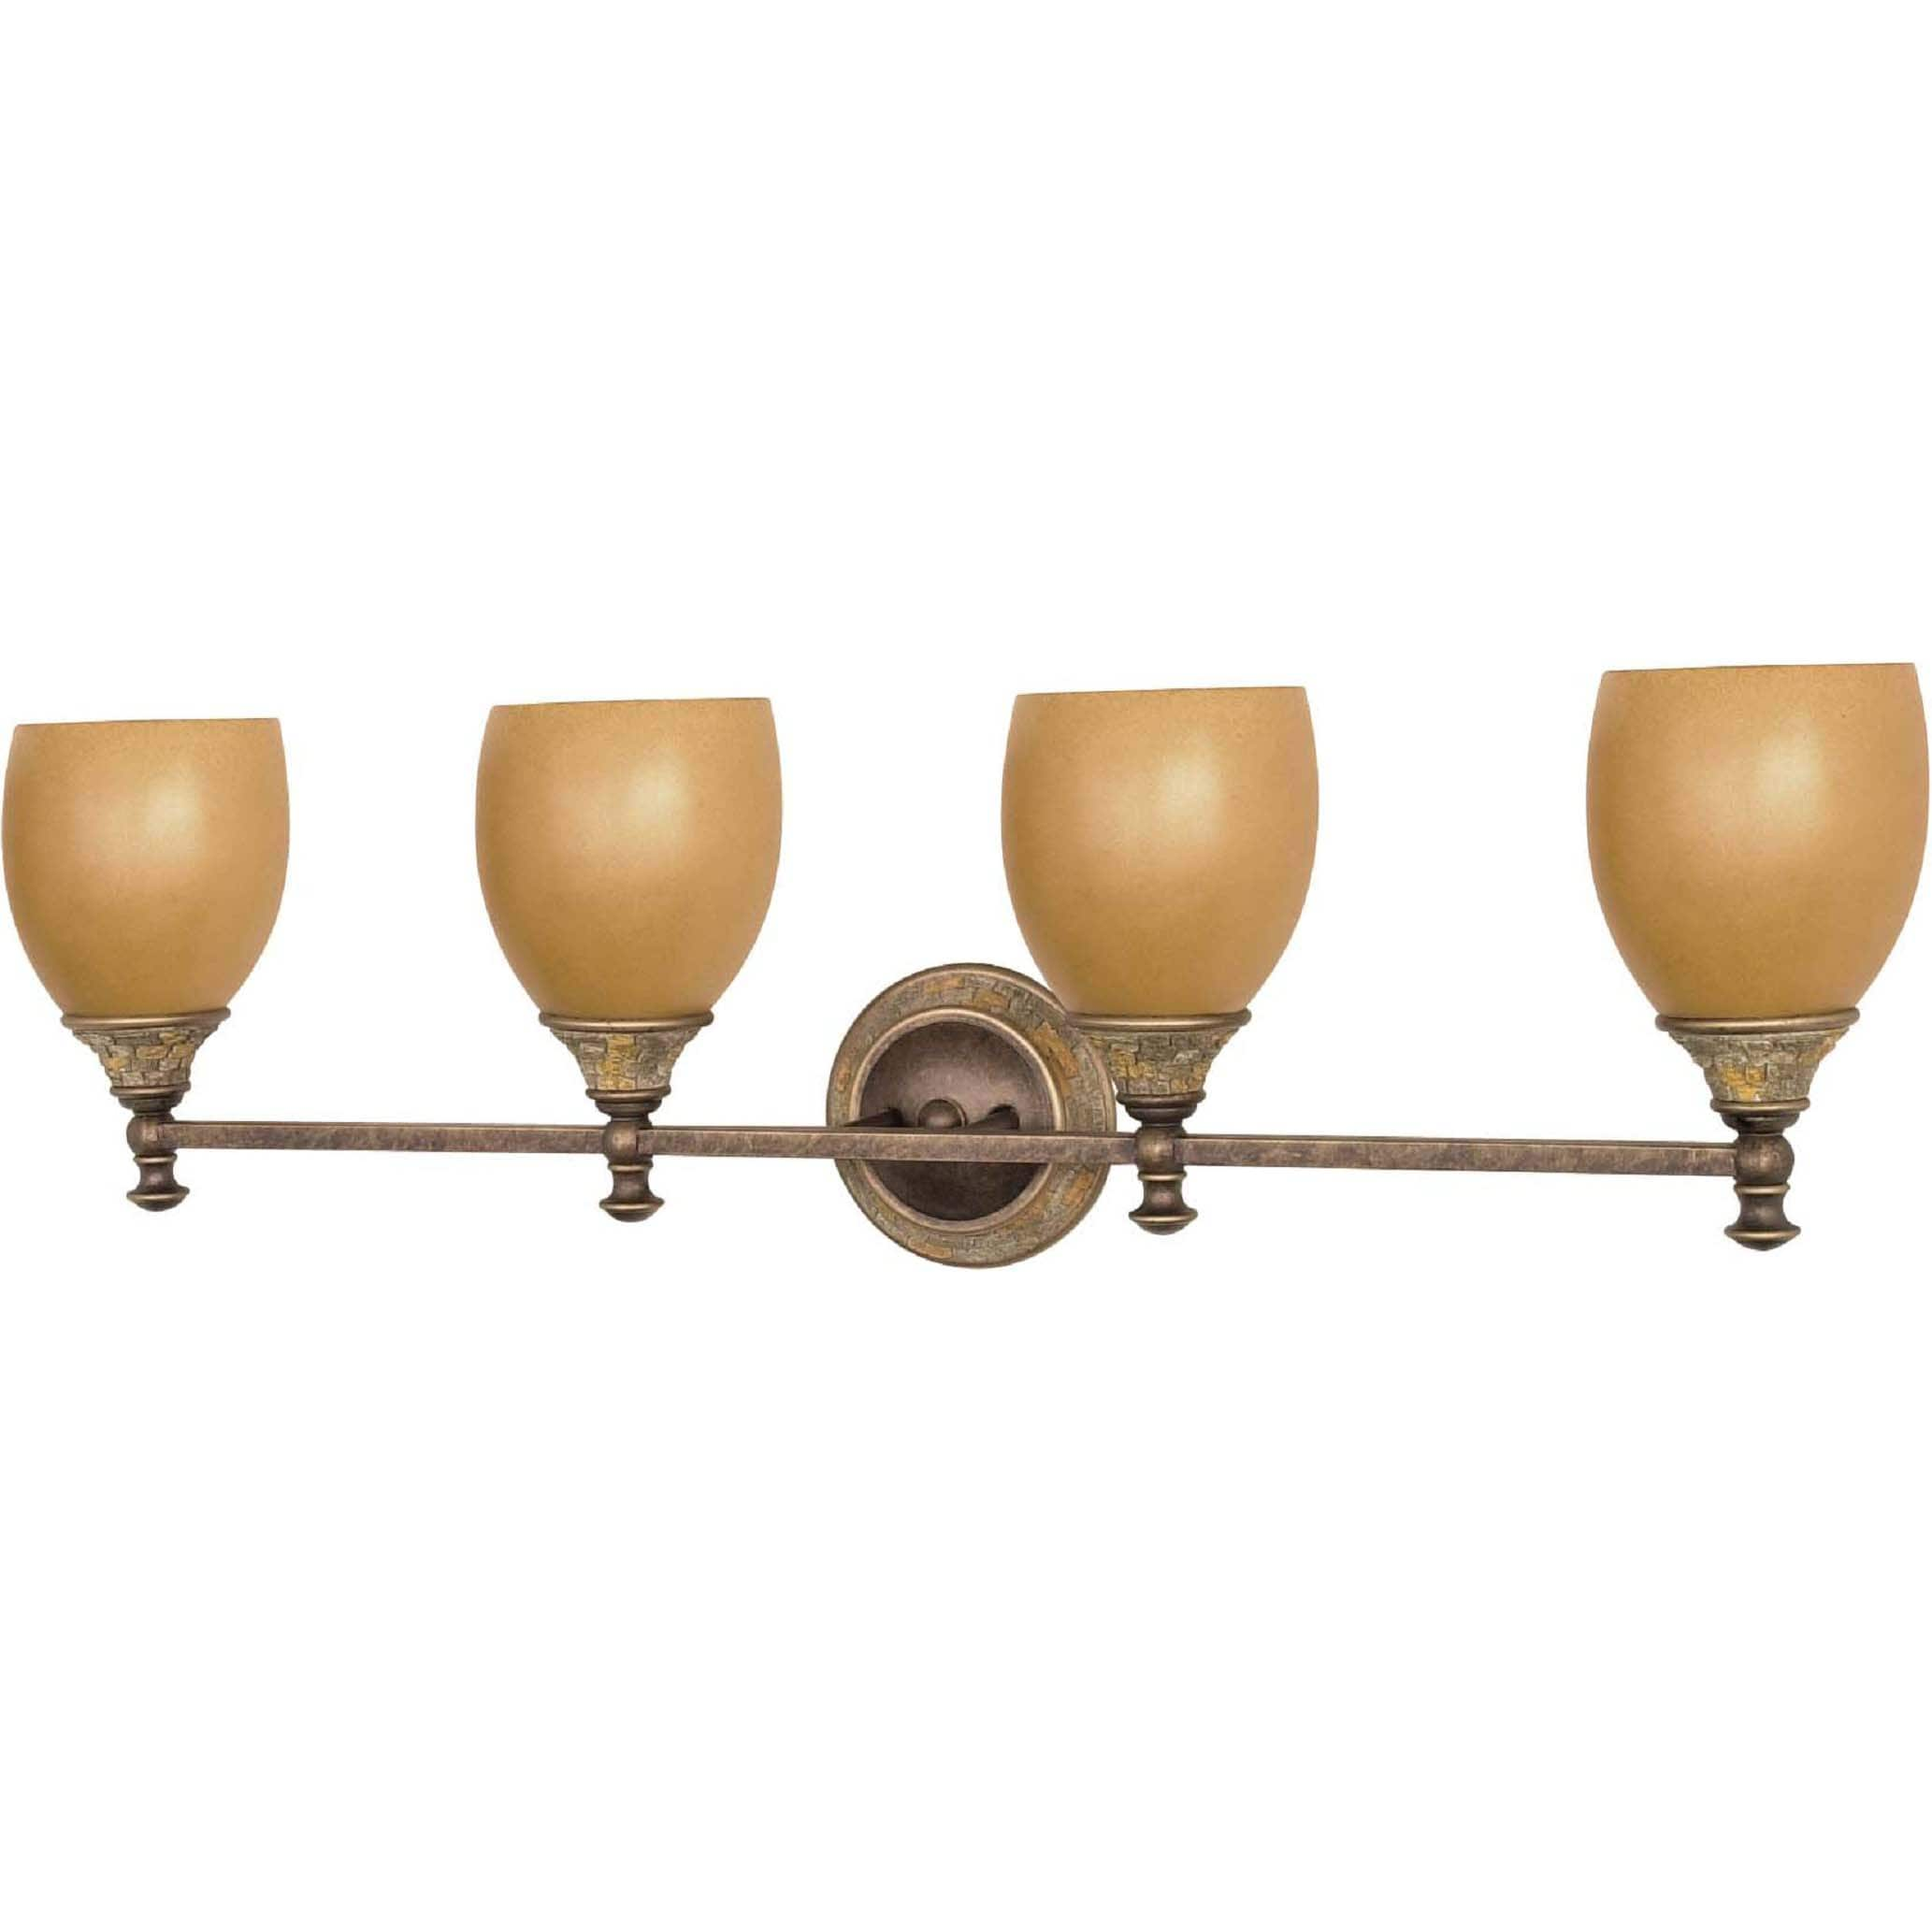 Rockport Tuscano Sepia Glass Dorado Bronze 4-light Vanity Fixture